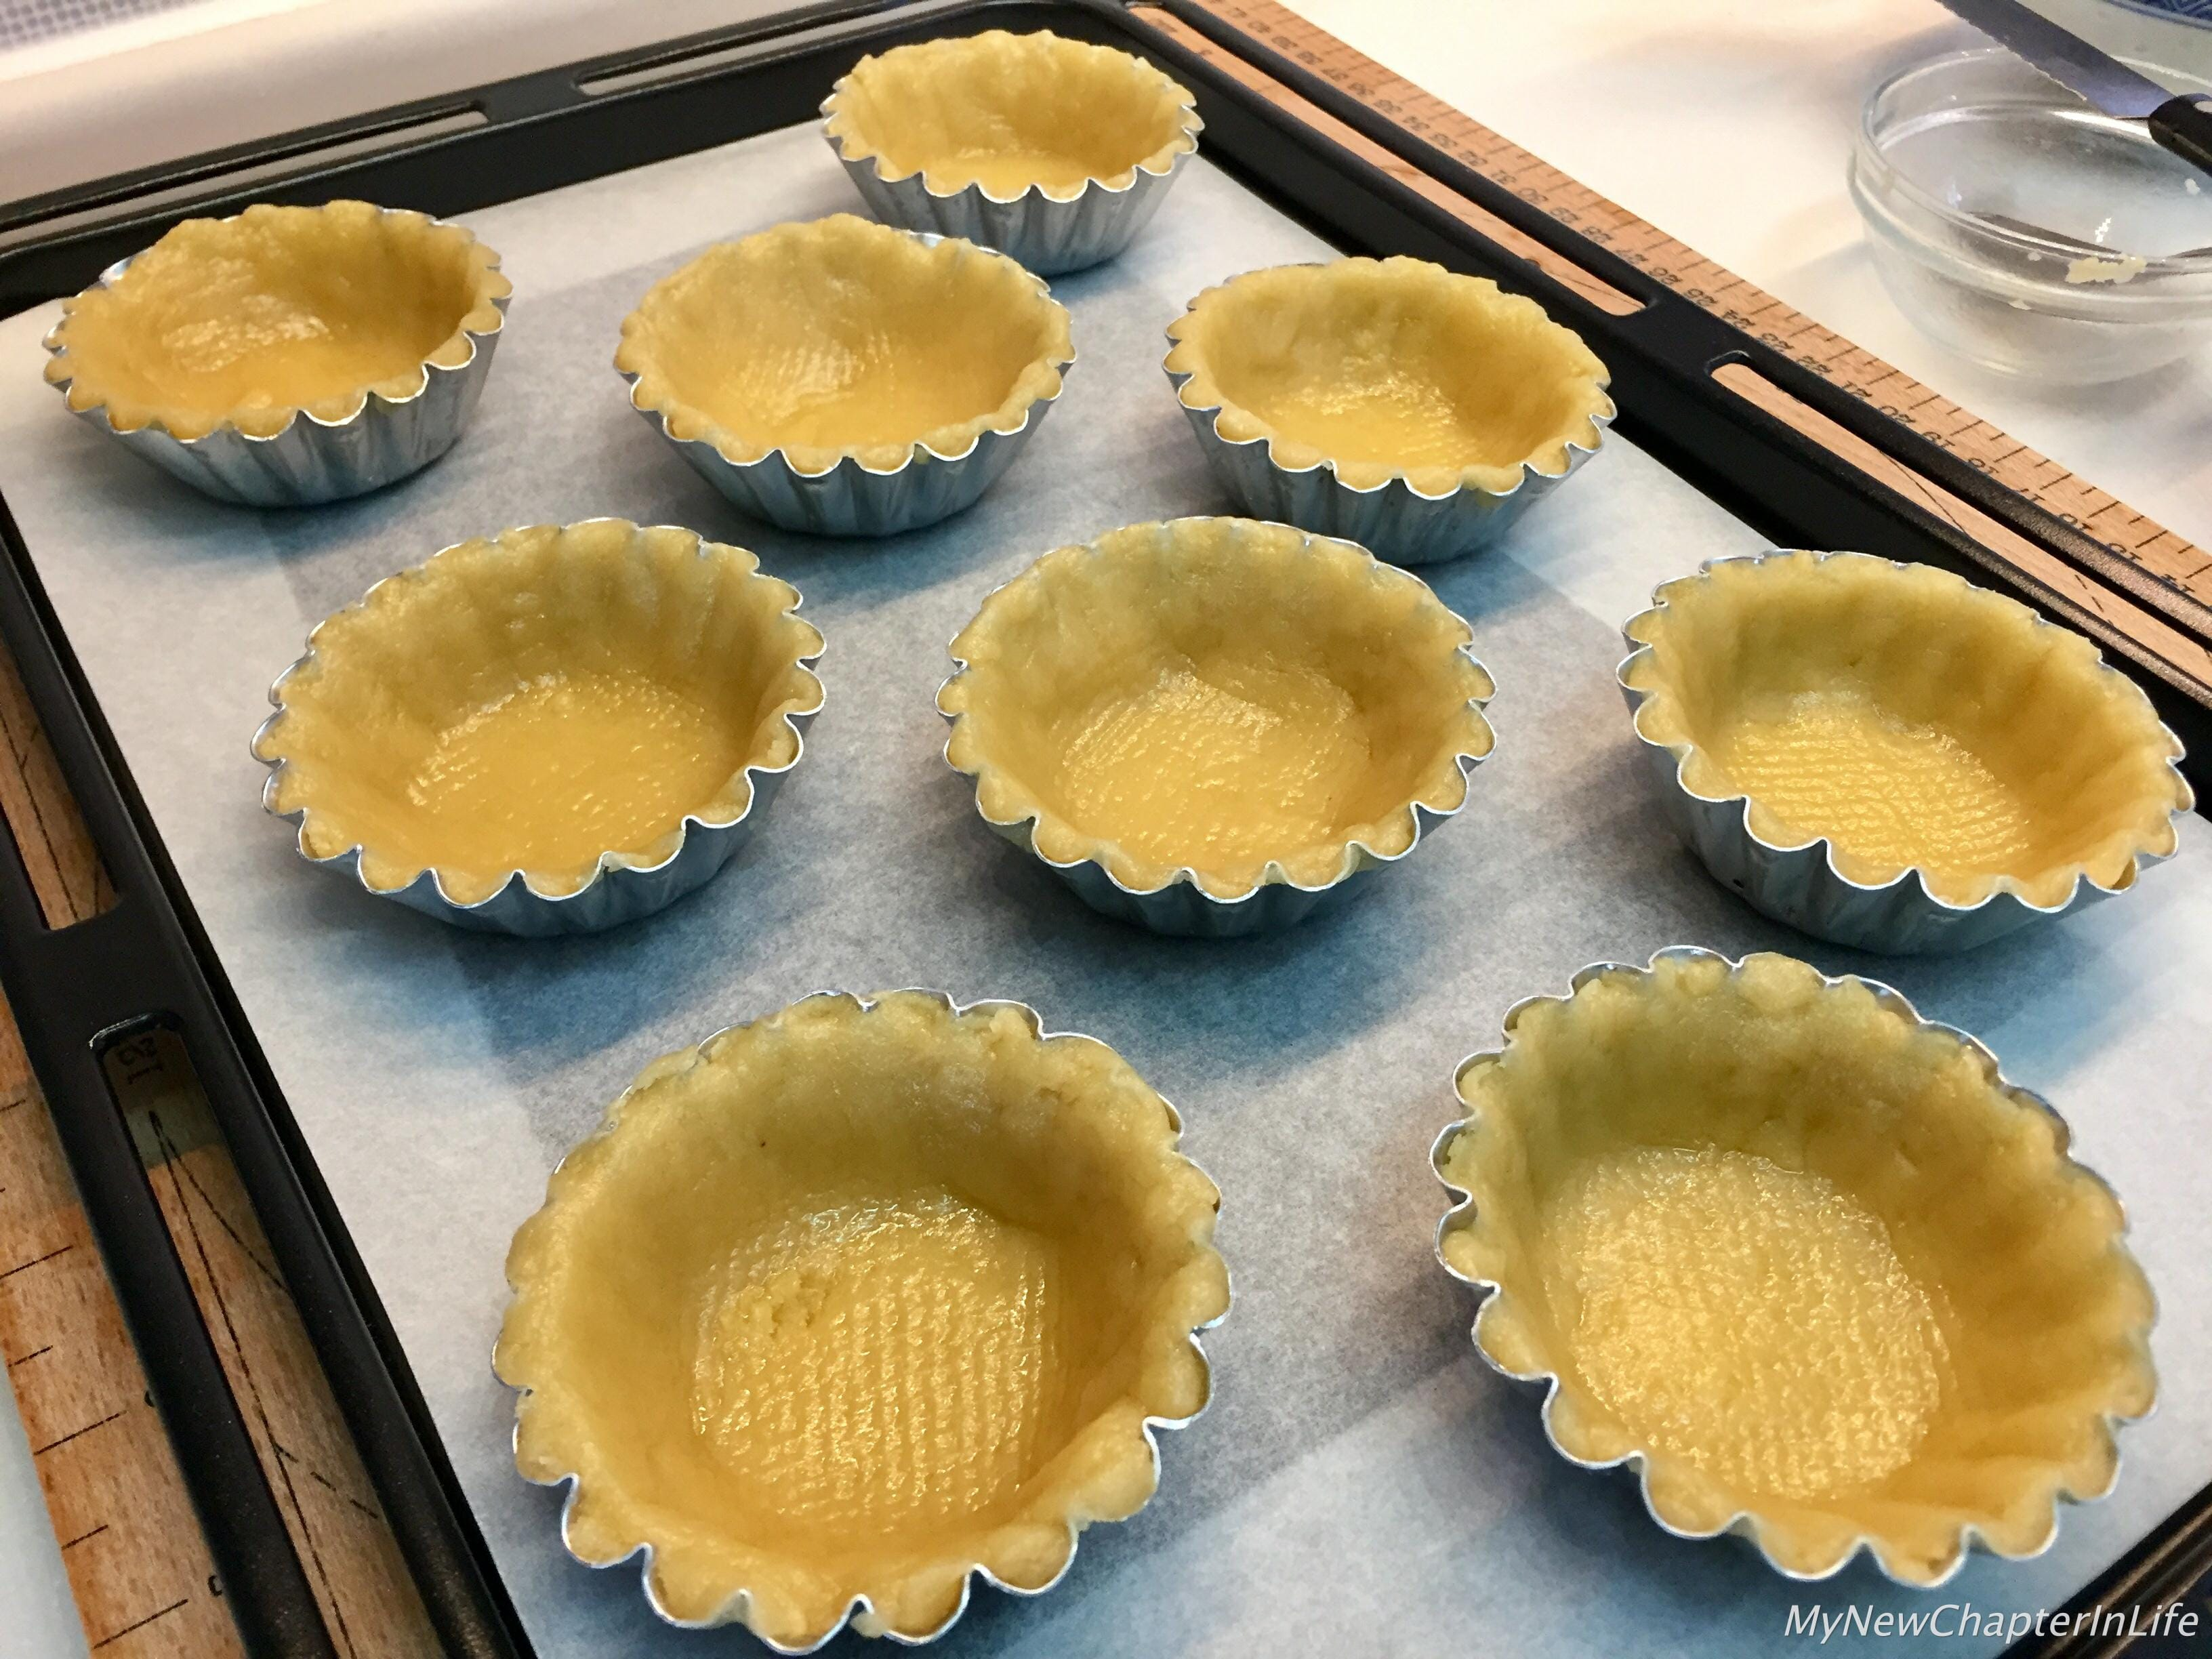 Lightly press the butter pastry base into the egg-tart mould